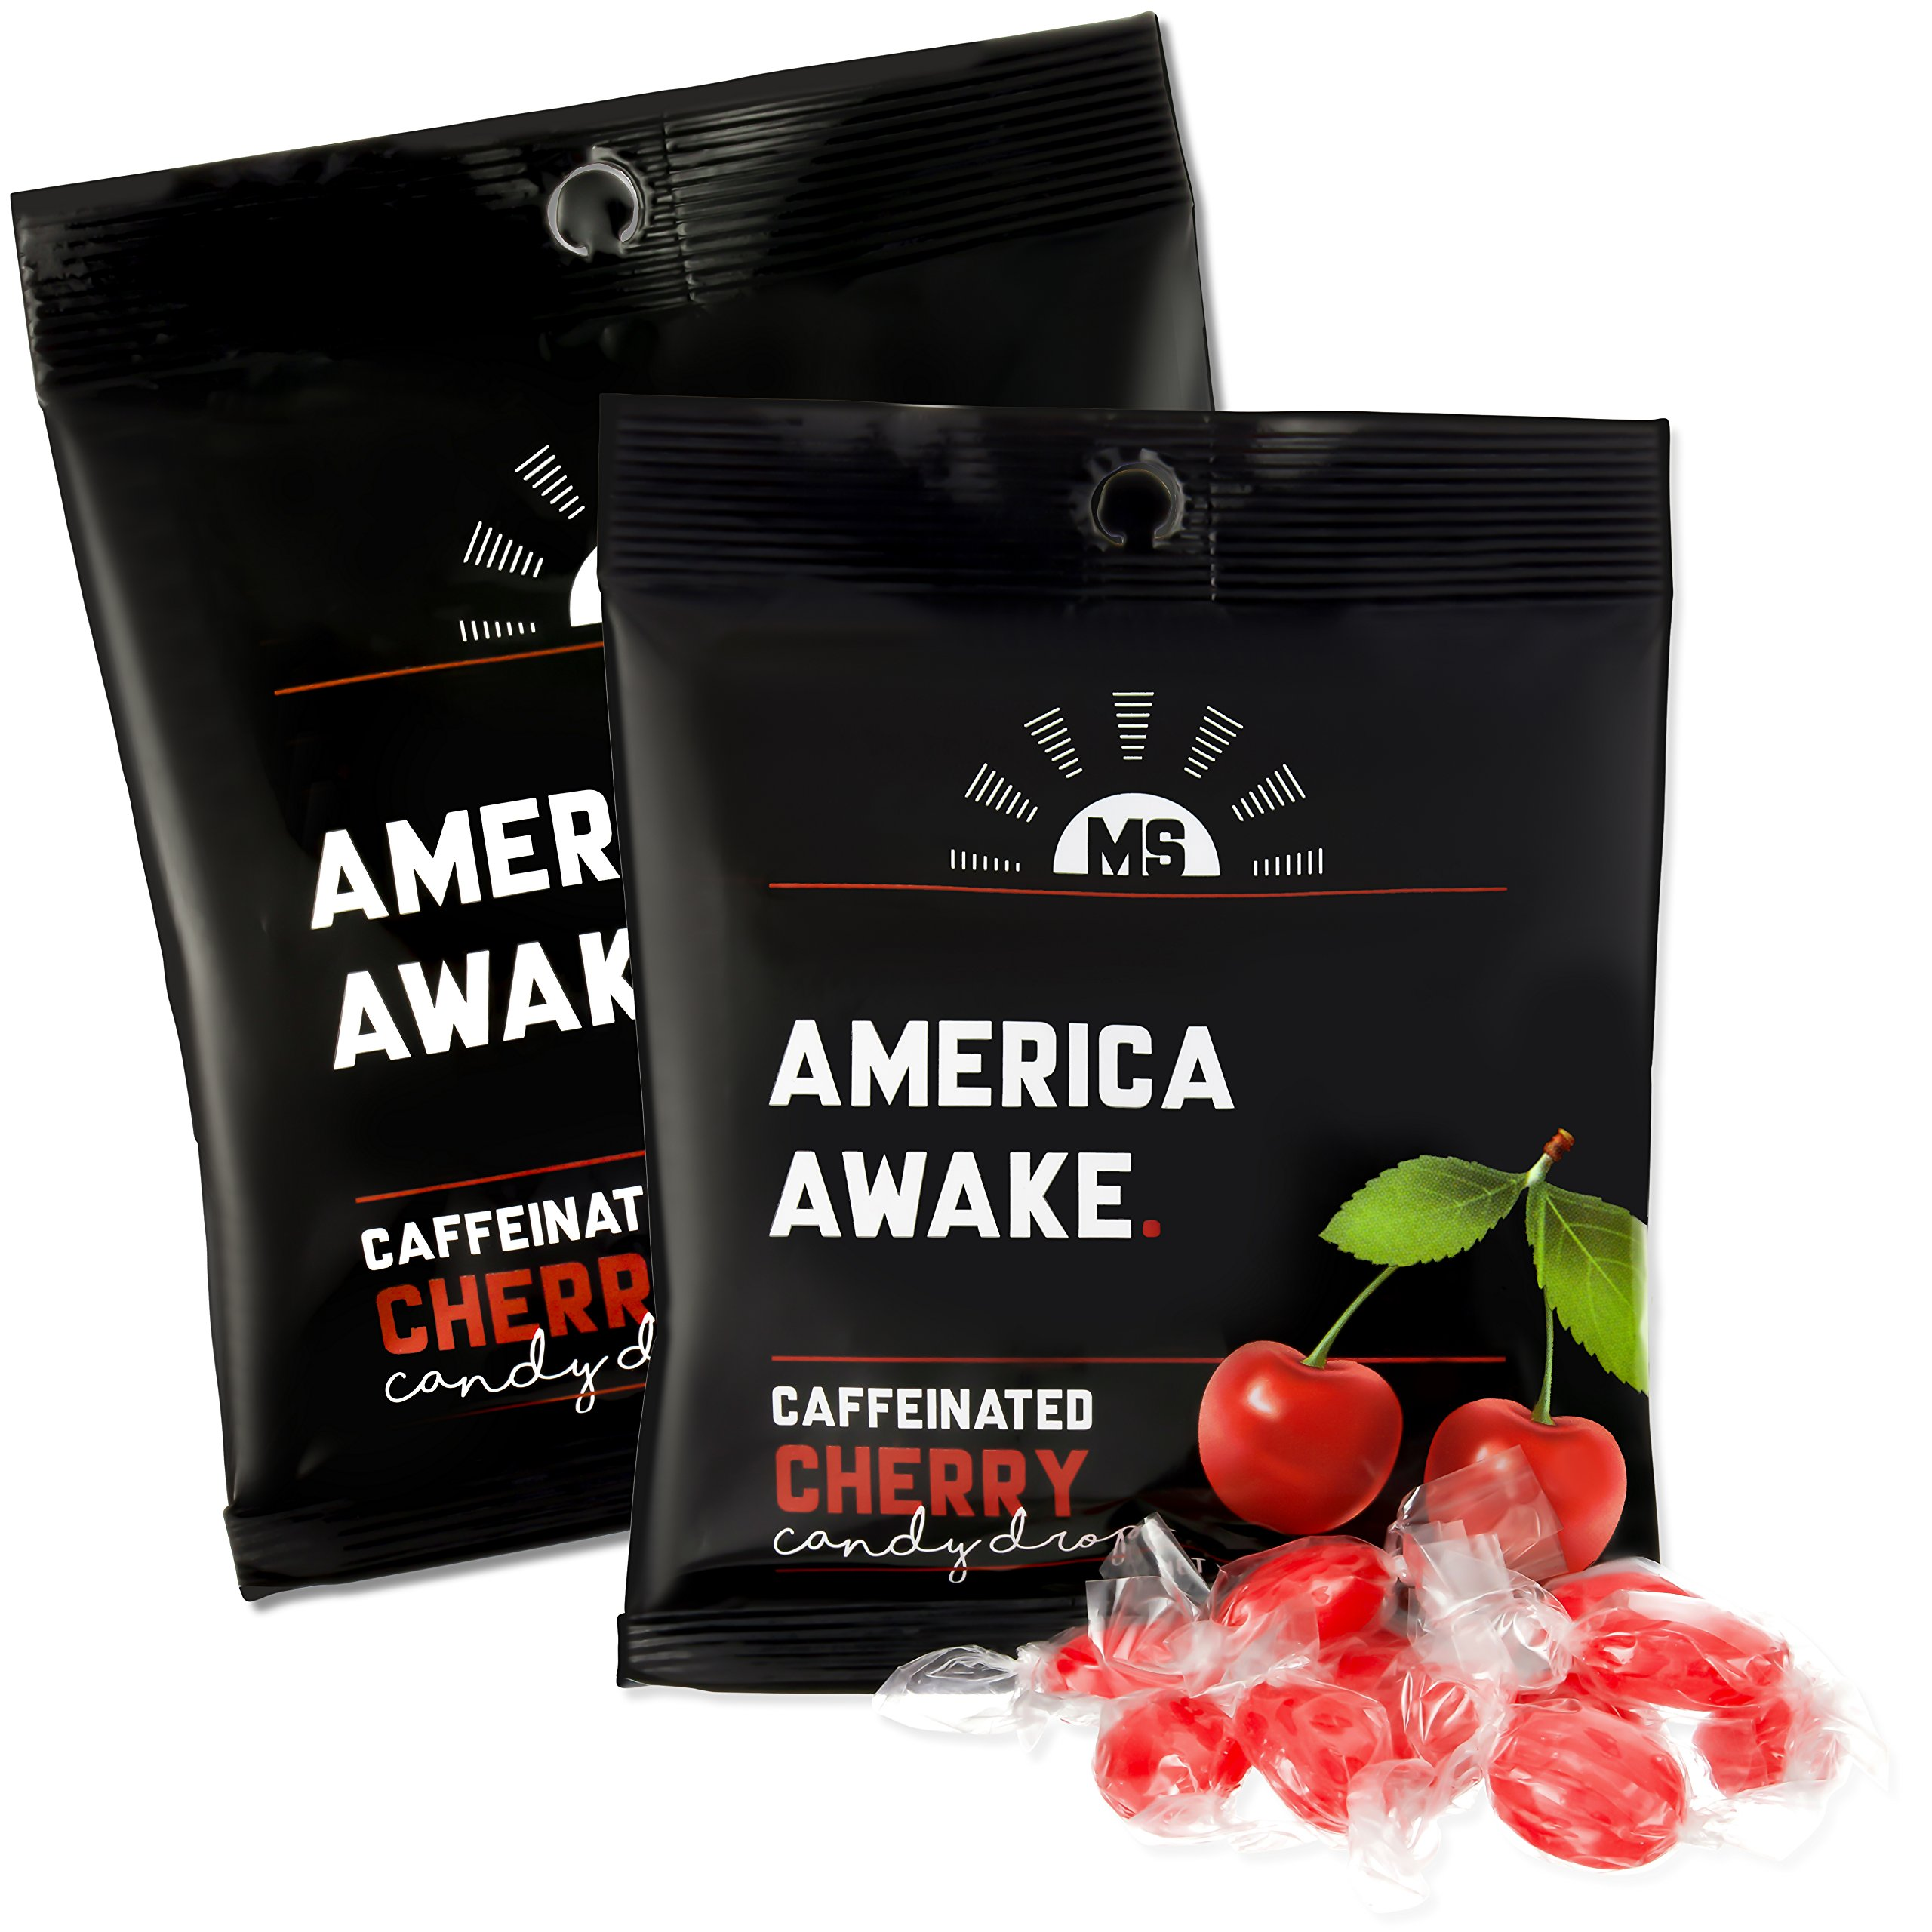 America Awake Caffeinated Candy Drops | Sweet & Easy Coffee & Caffeine Substitute | Keep Energy Up & Boost Focus throughout your Day | Great Coffee & Energy Drink Alternative | Cherry Flavor | 2 pack.